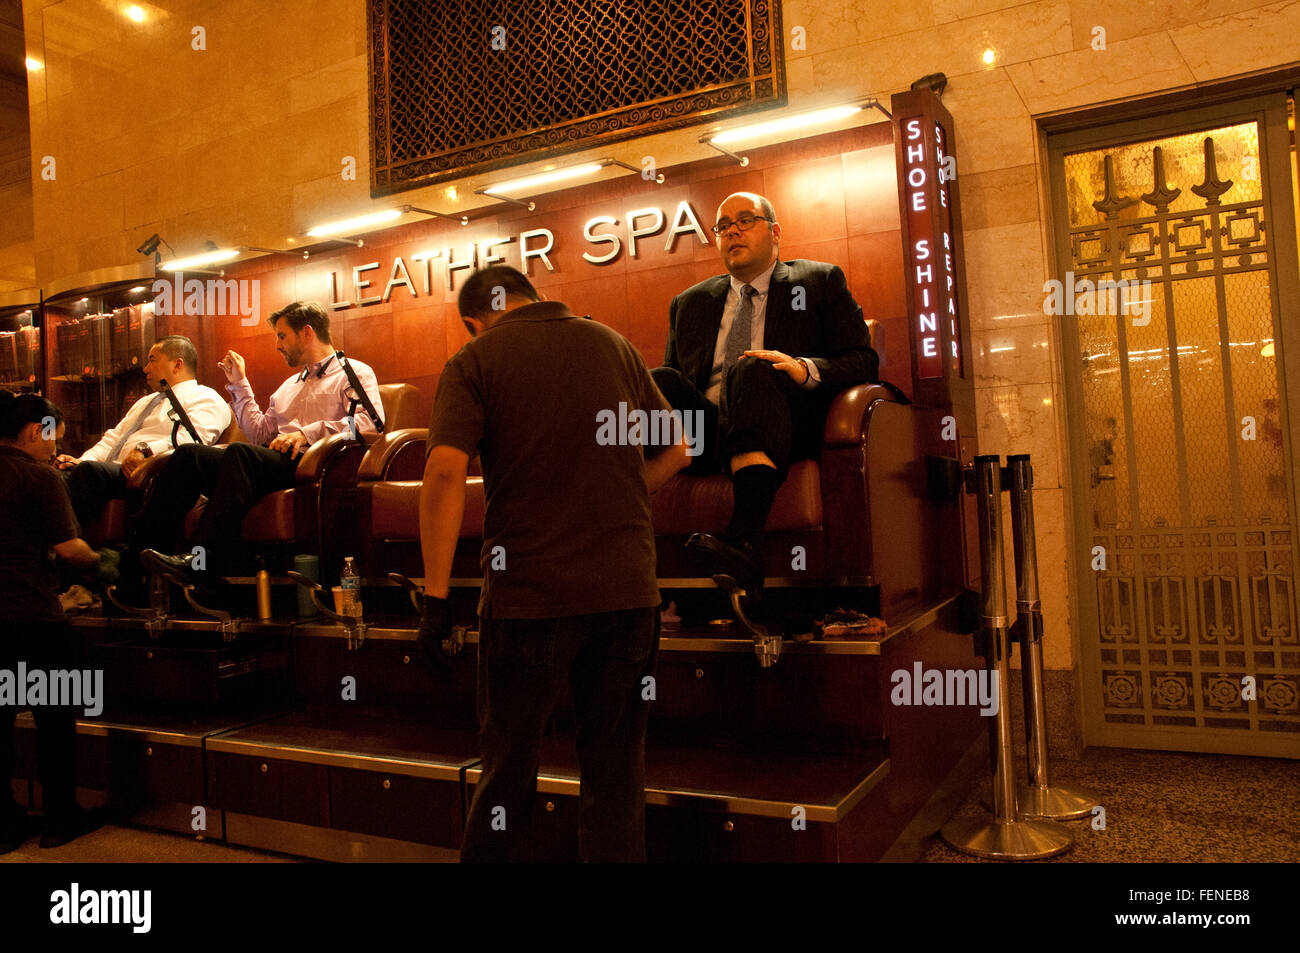 Shoe shinning stand in Grand Central station Manhatten New York City - Stock Image